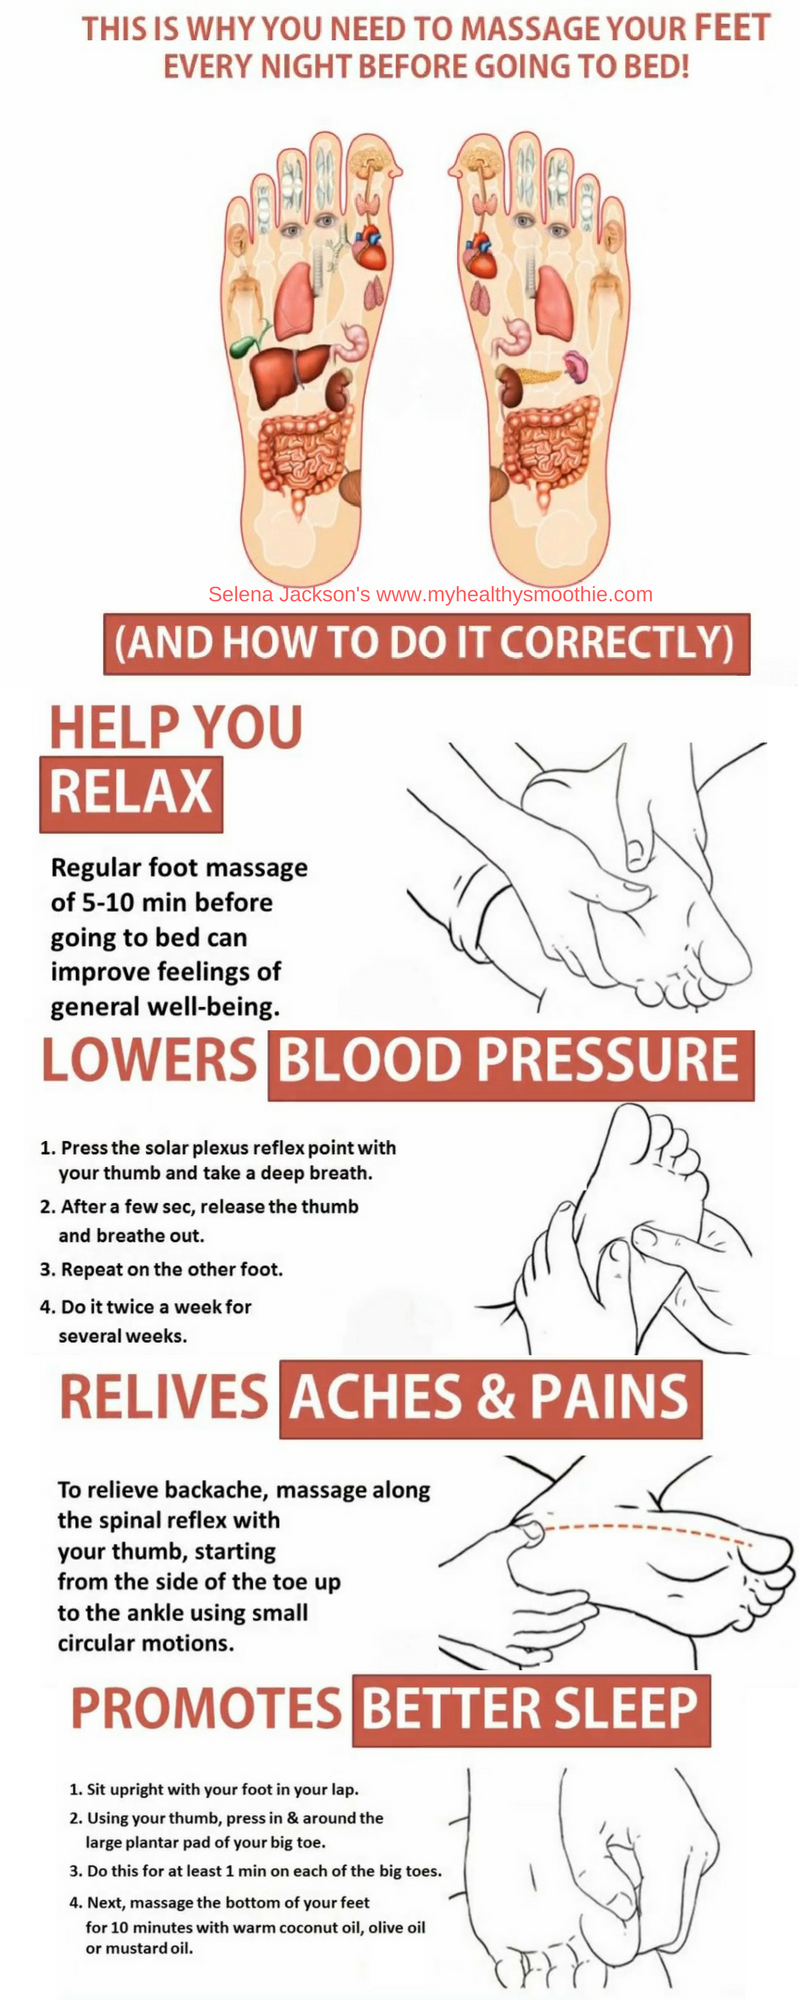 hight resolution of how to massage your feet properly and all the health benefits that come from it massages can help you relax sleep better lower blood pressure